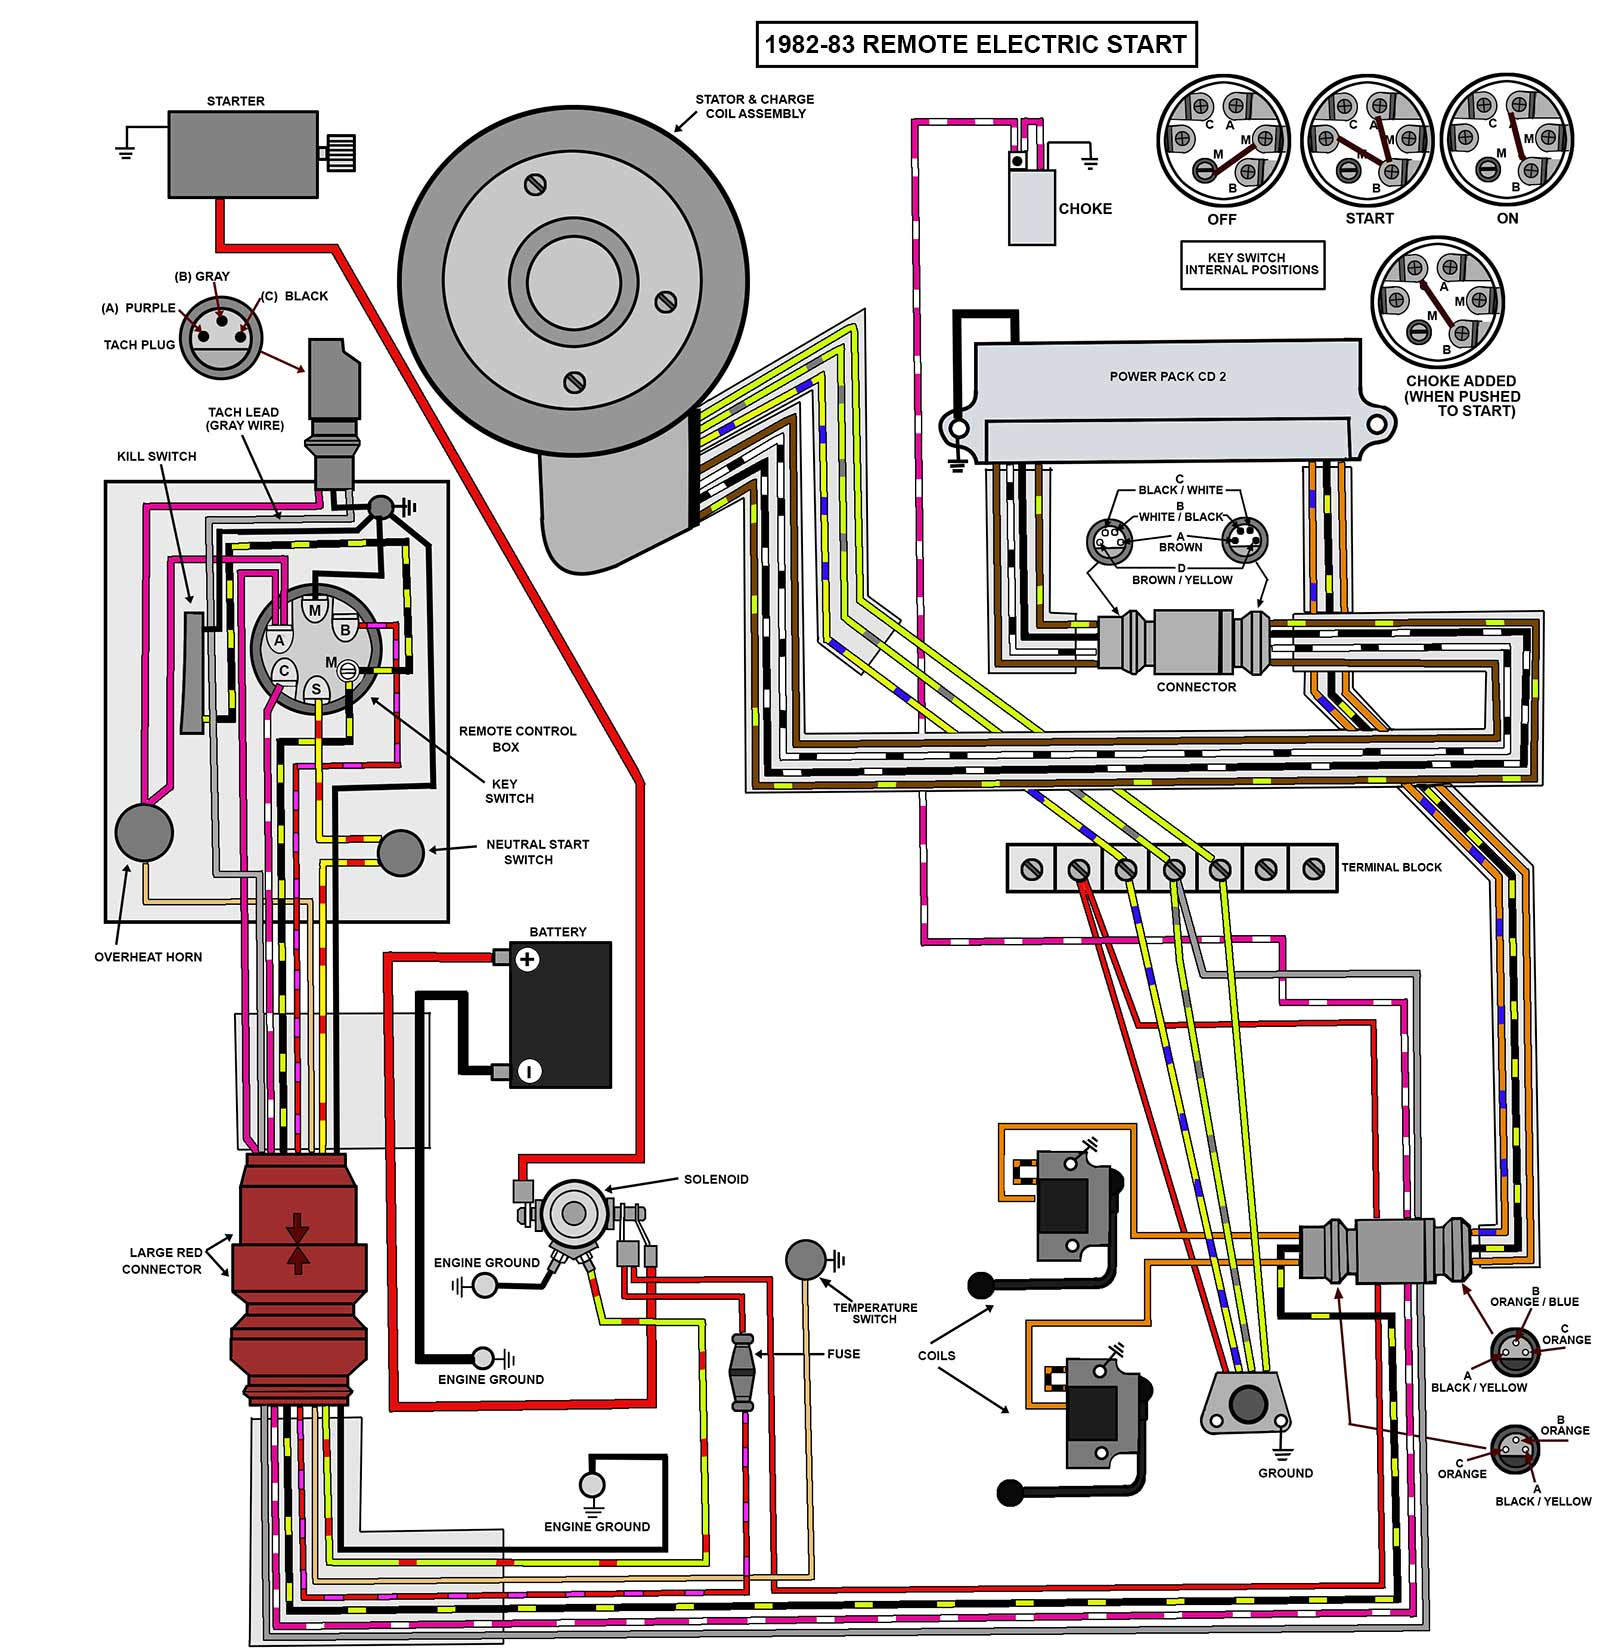 25_35_82 83_elec remote mastertech marine evinrude johnson outboard wiring diagrams 1964 johnson outboard 40 hp wiring diagram at bayanpartner.co